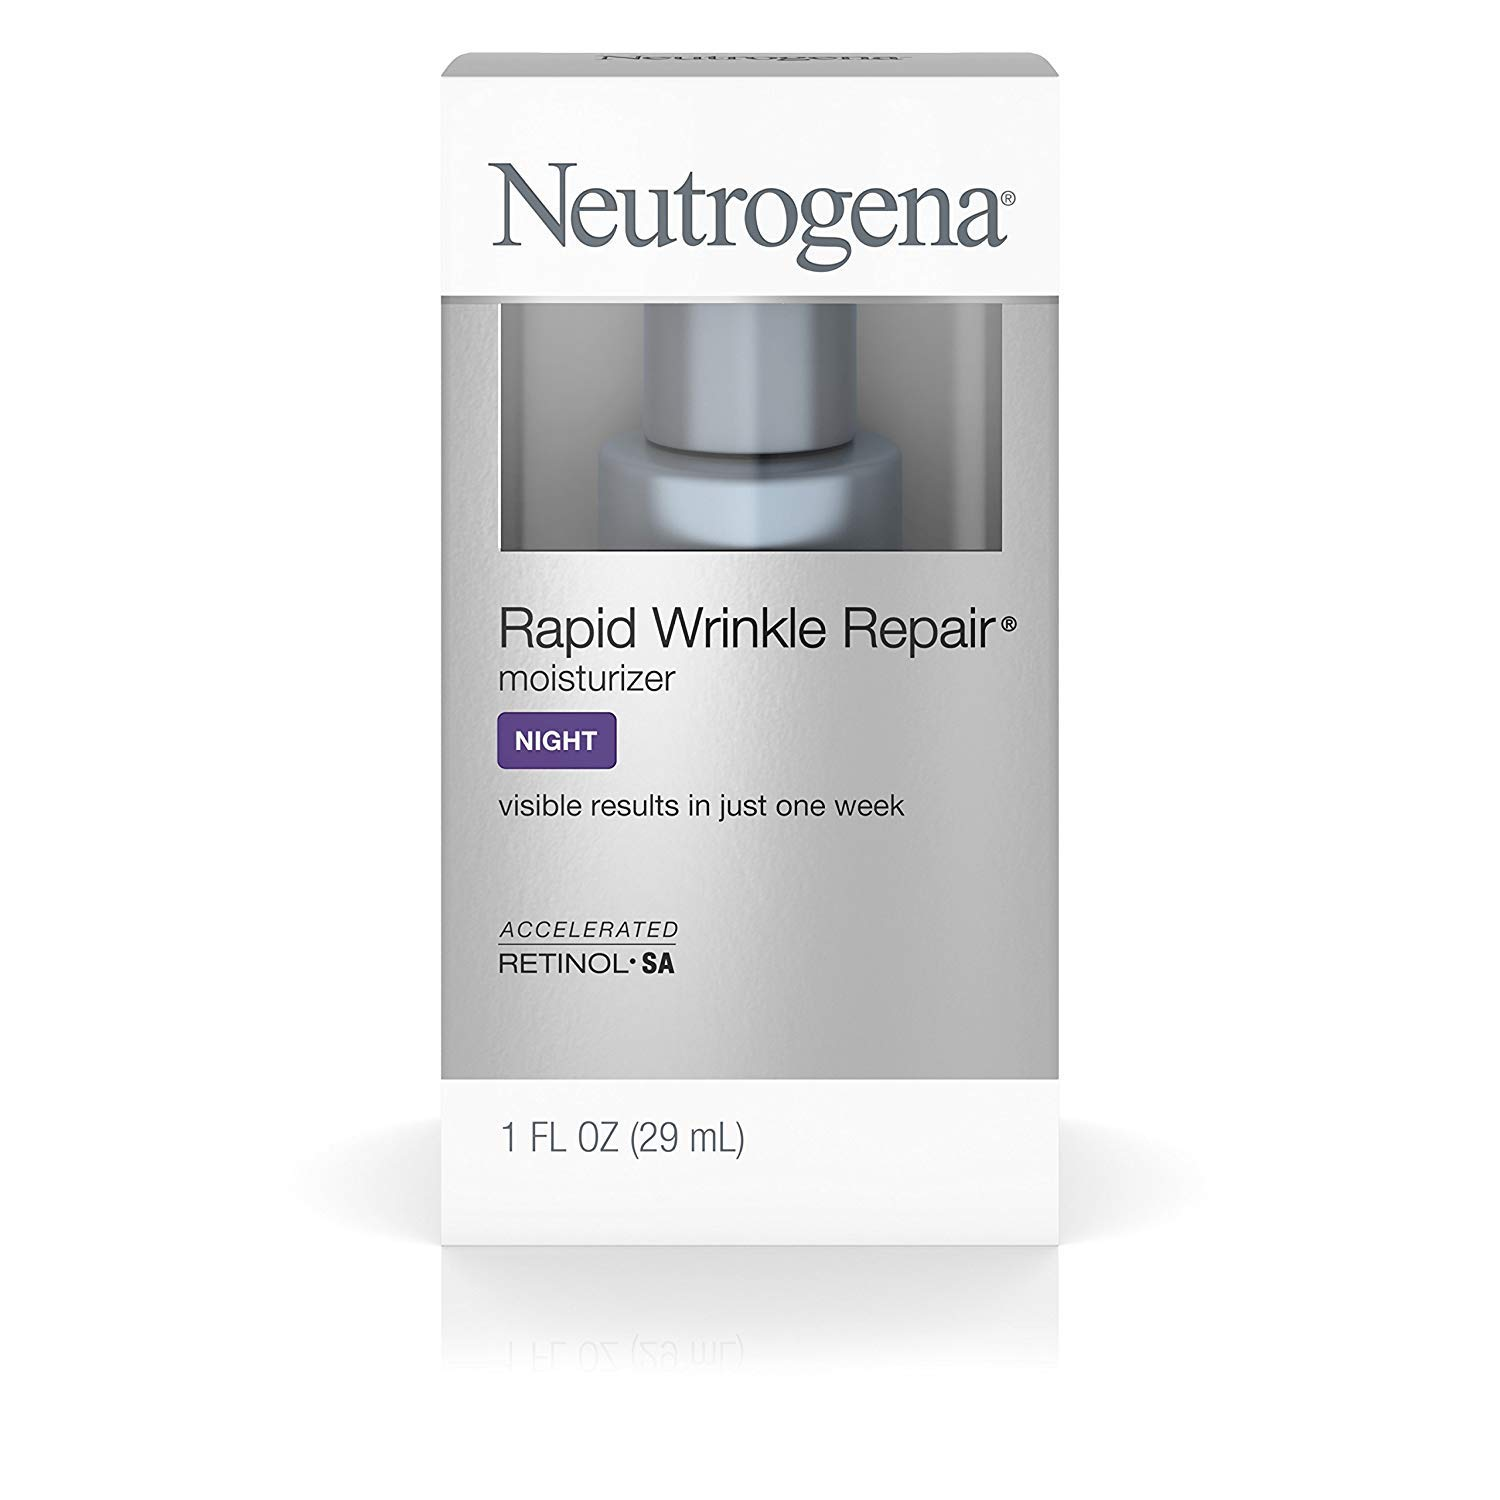 Neutrogena Rapid Wrinkle Repair Moisturizer 1 Ounce Night (29ml) (2 Pack)